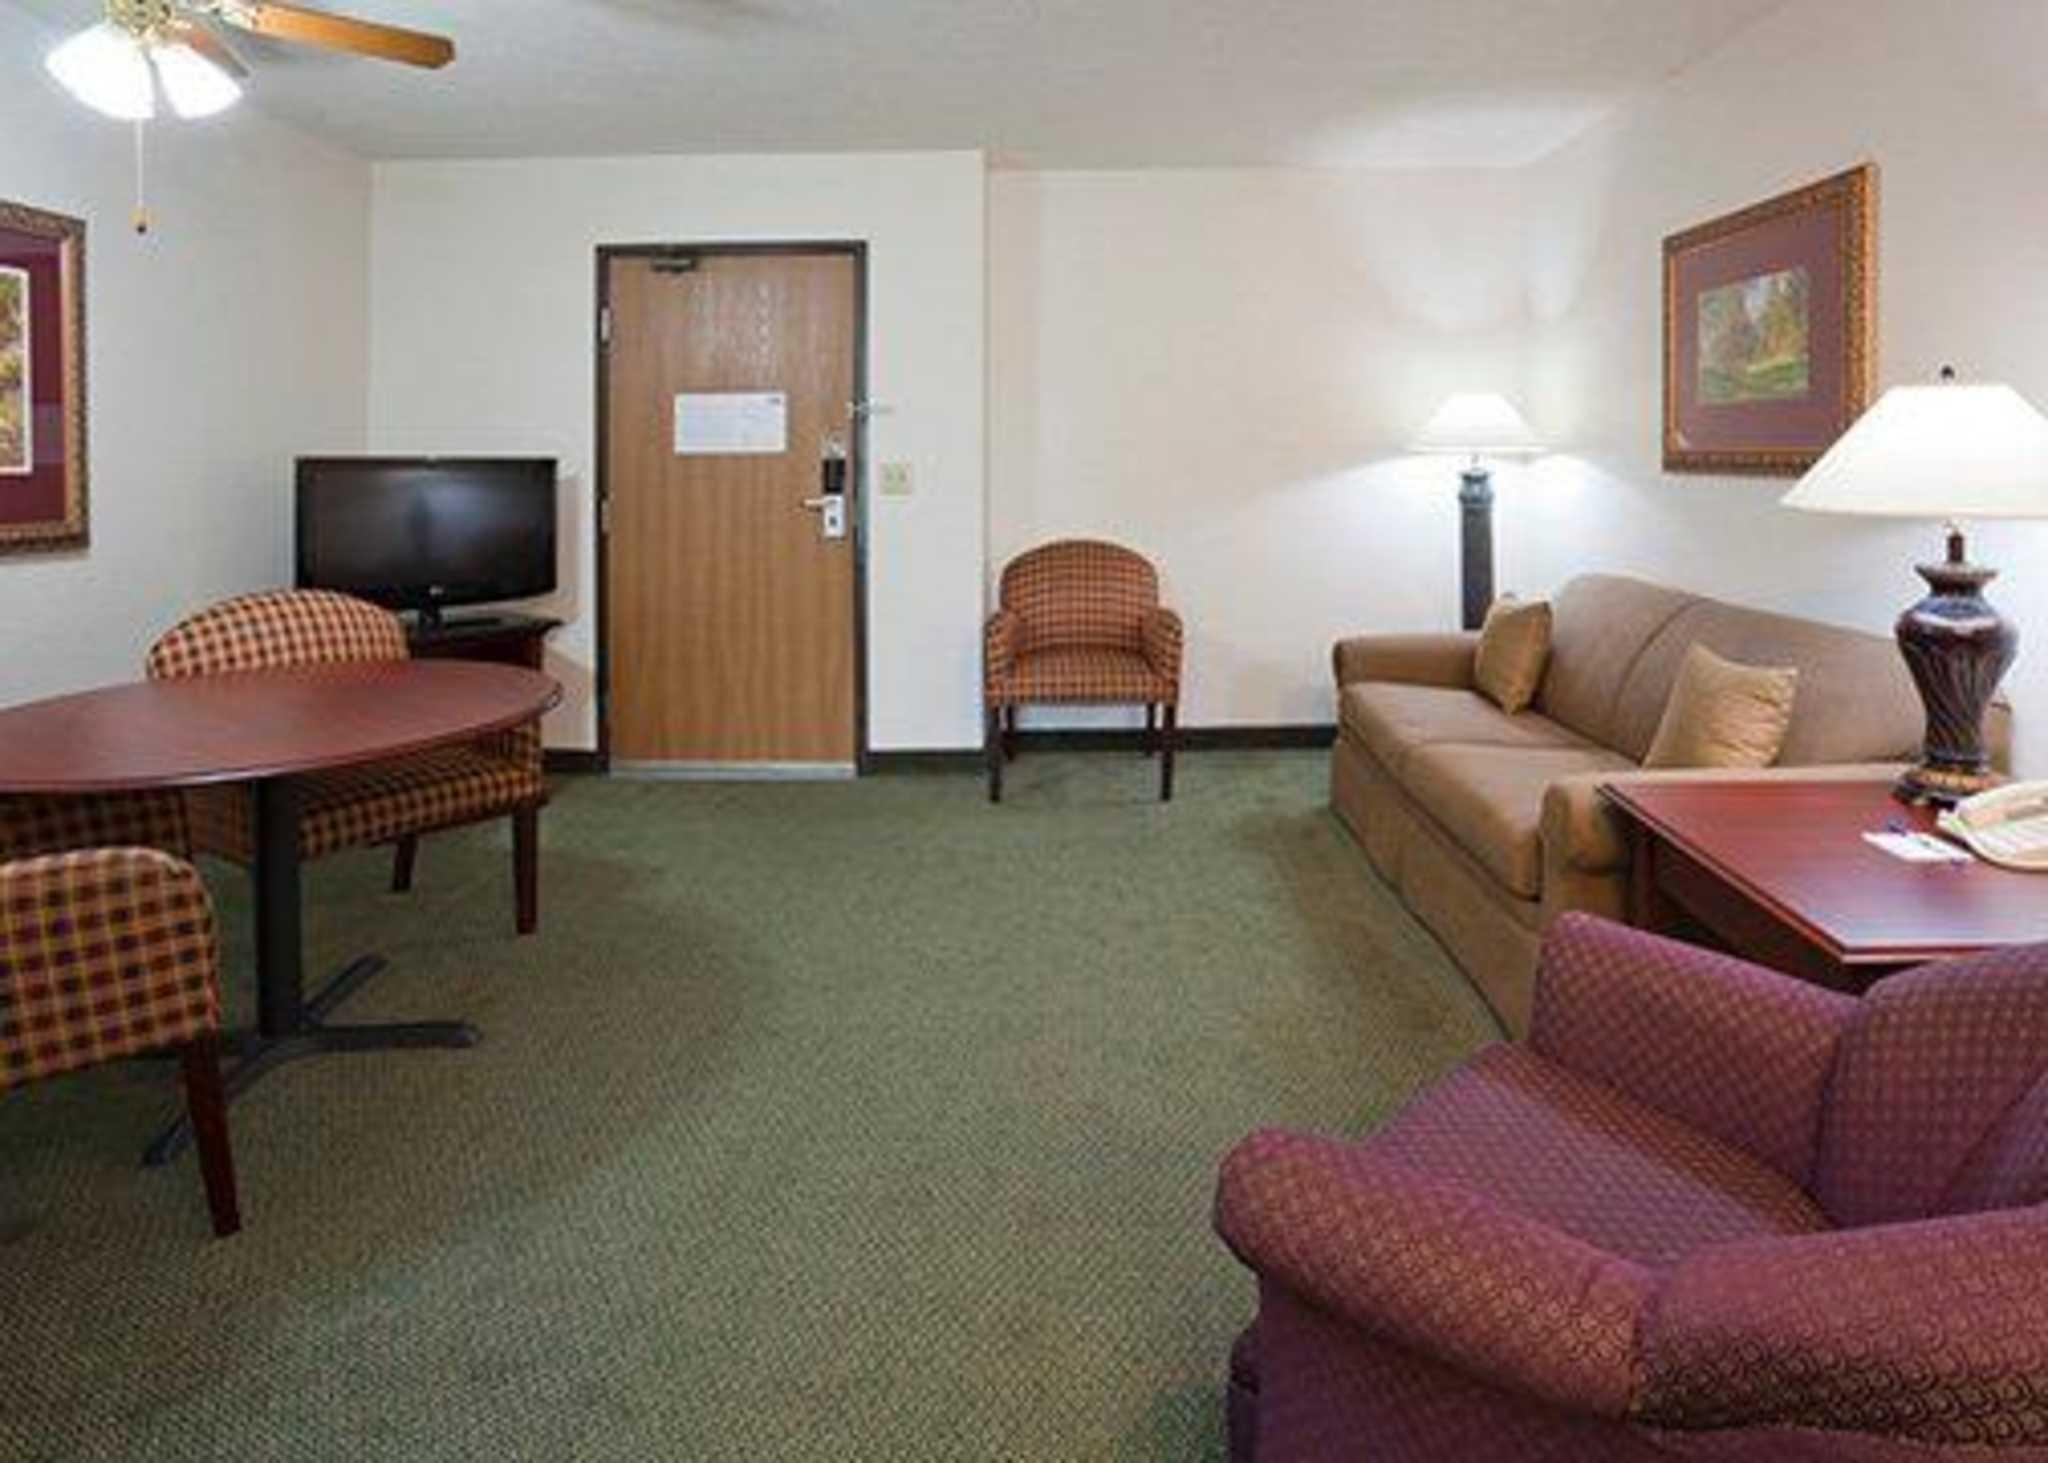 Quality Inn and Suites Eagan Discount